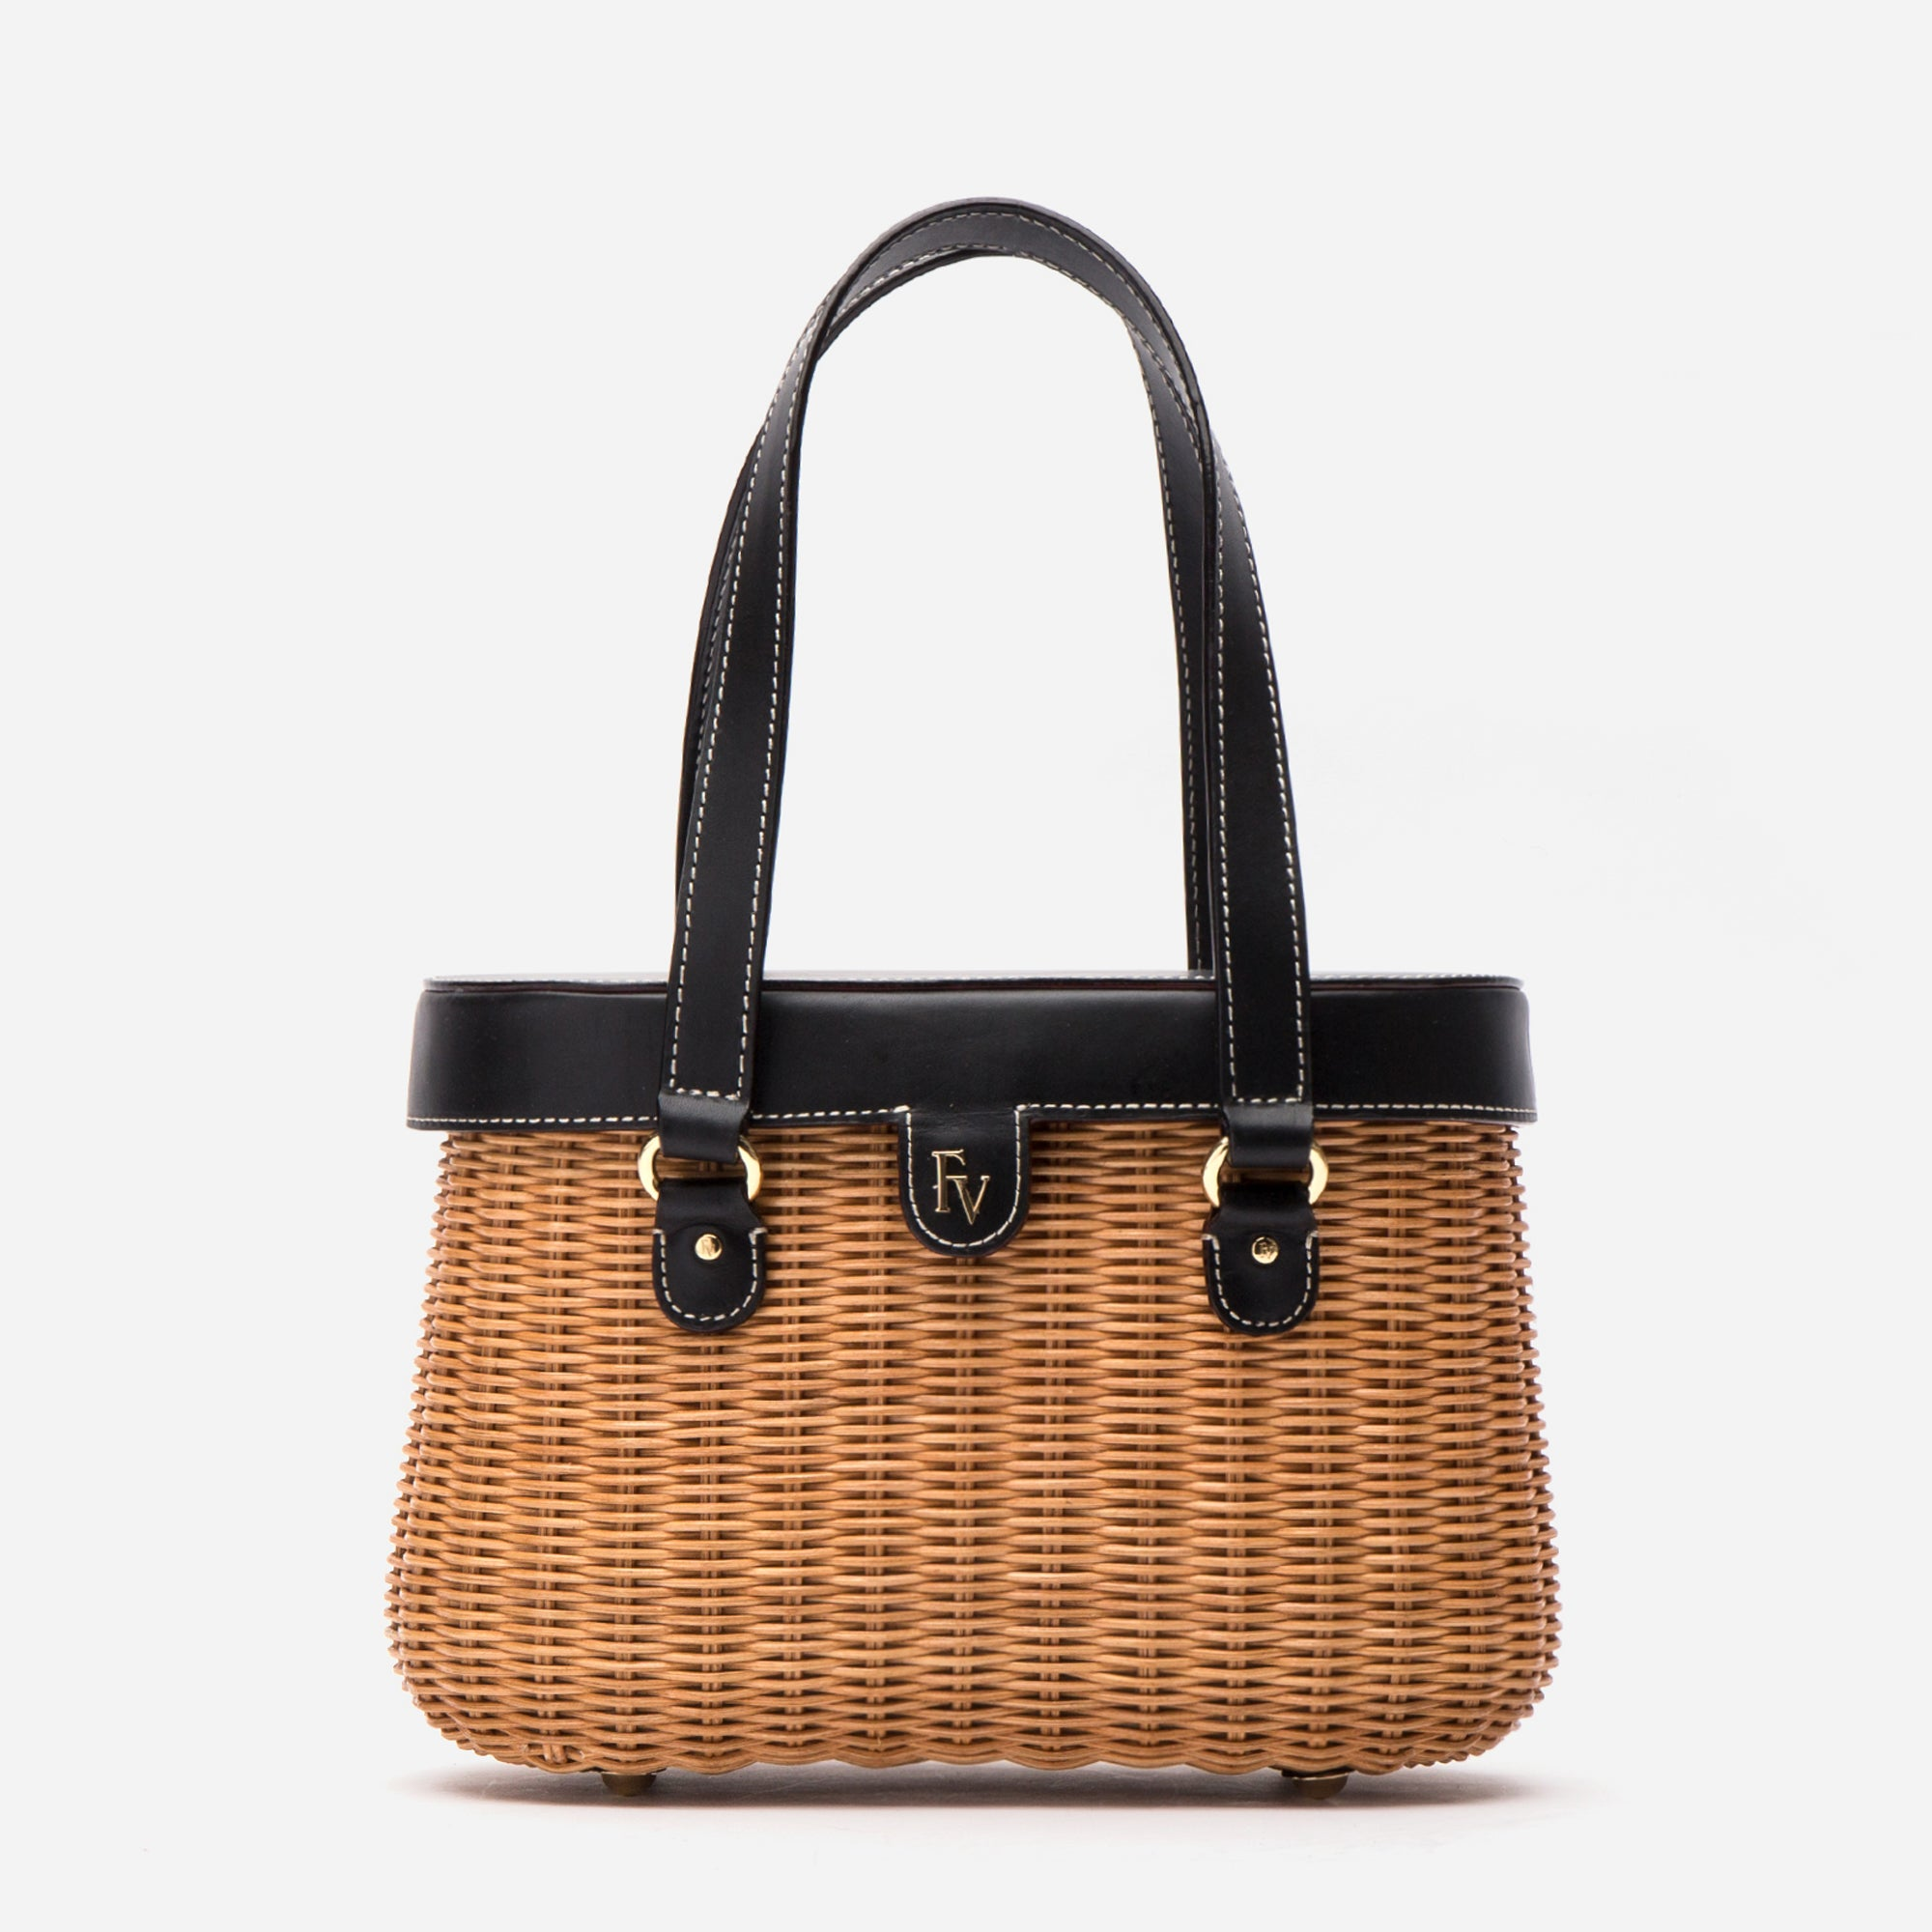 Arielle Wicker Basket Black